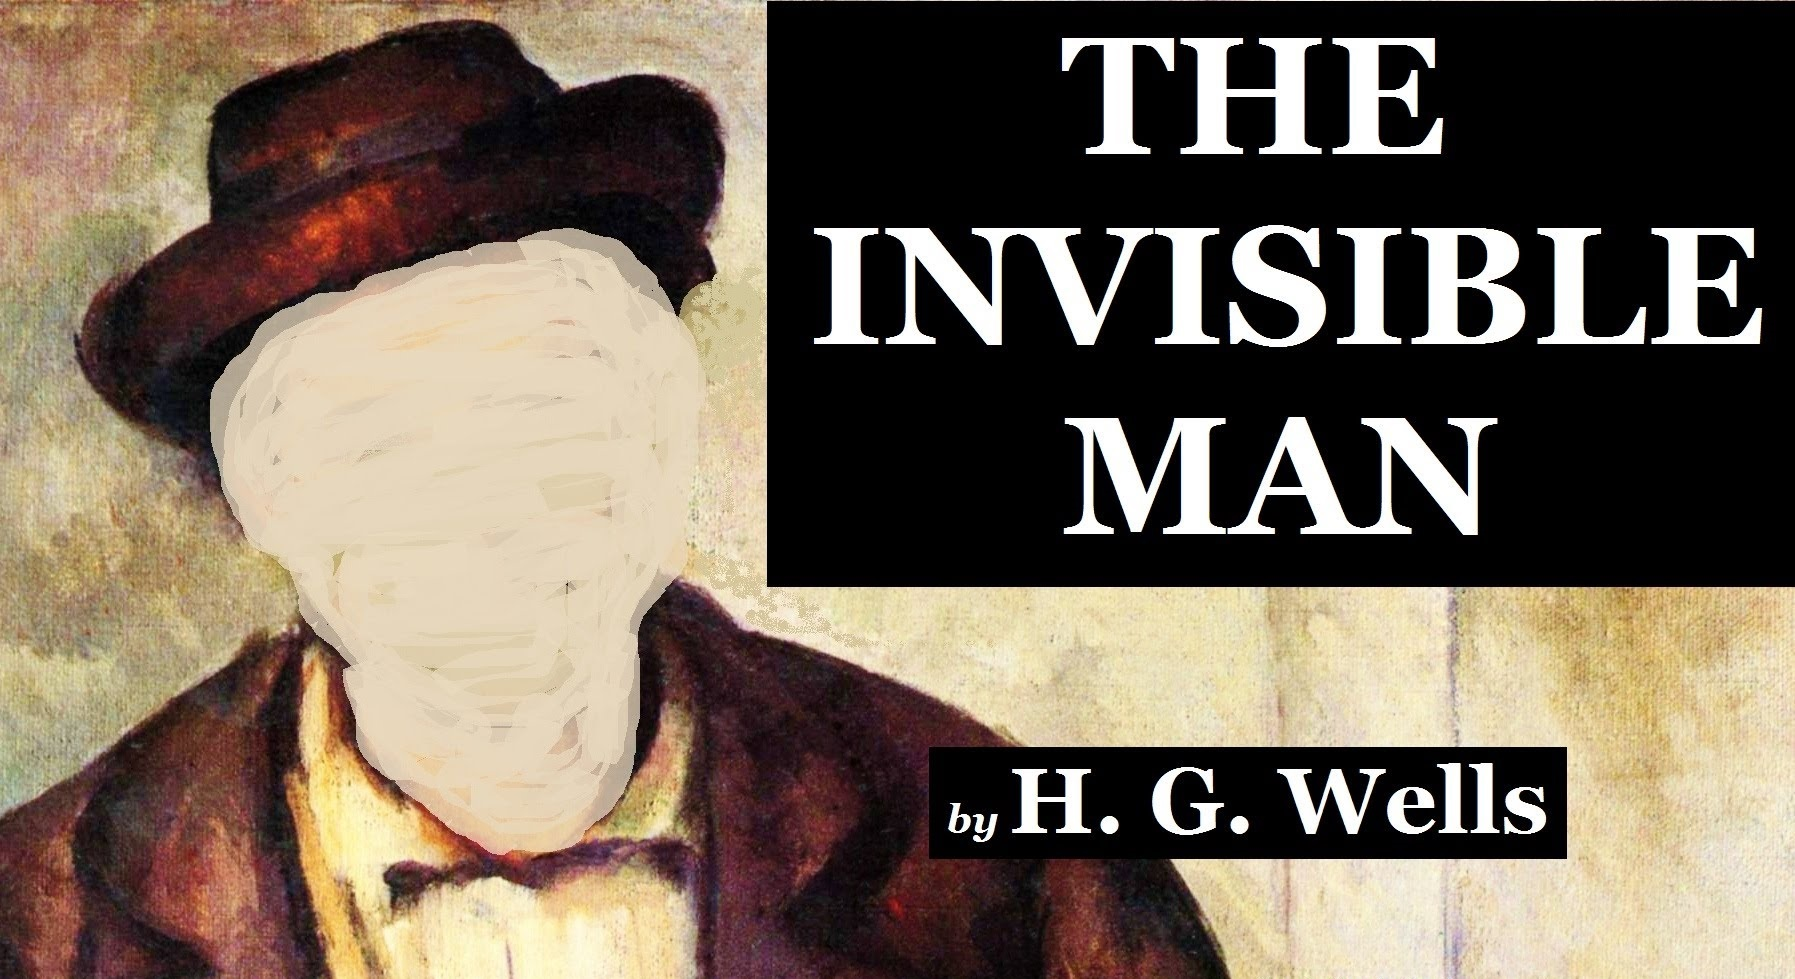 the hidden secrets in the invisible man by h g wells Unlike most editing & proofreading services, we edit for everything: grammar, spelling, punctuation, idea flow, sentence structure, & more get started now.